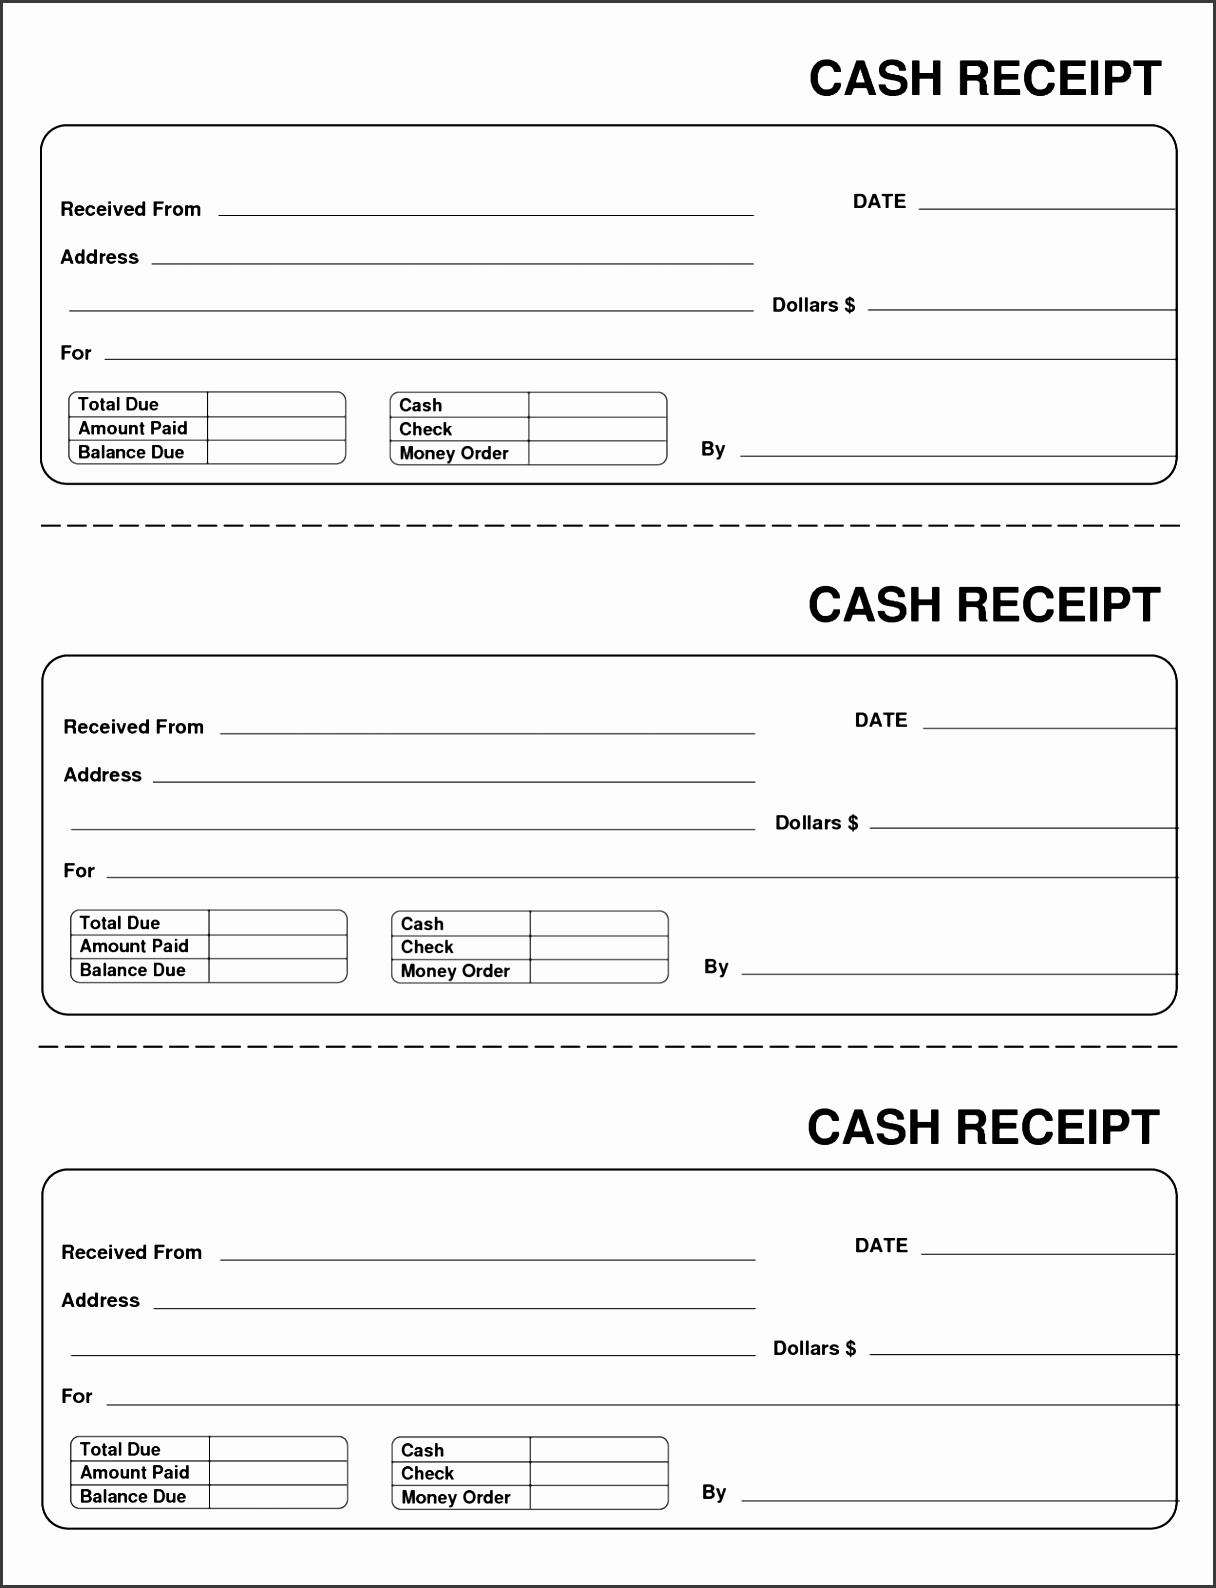 Ticket order form Template New 6 Payment Receipt Design Sampletemplatess Sampletemplatess